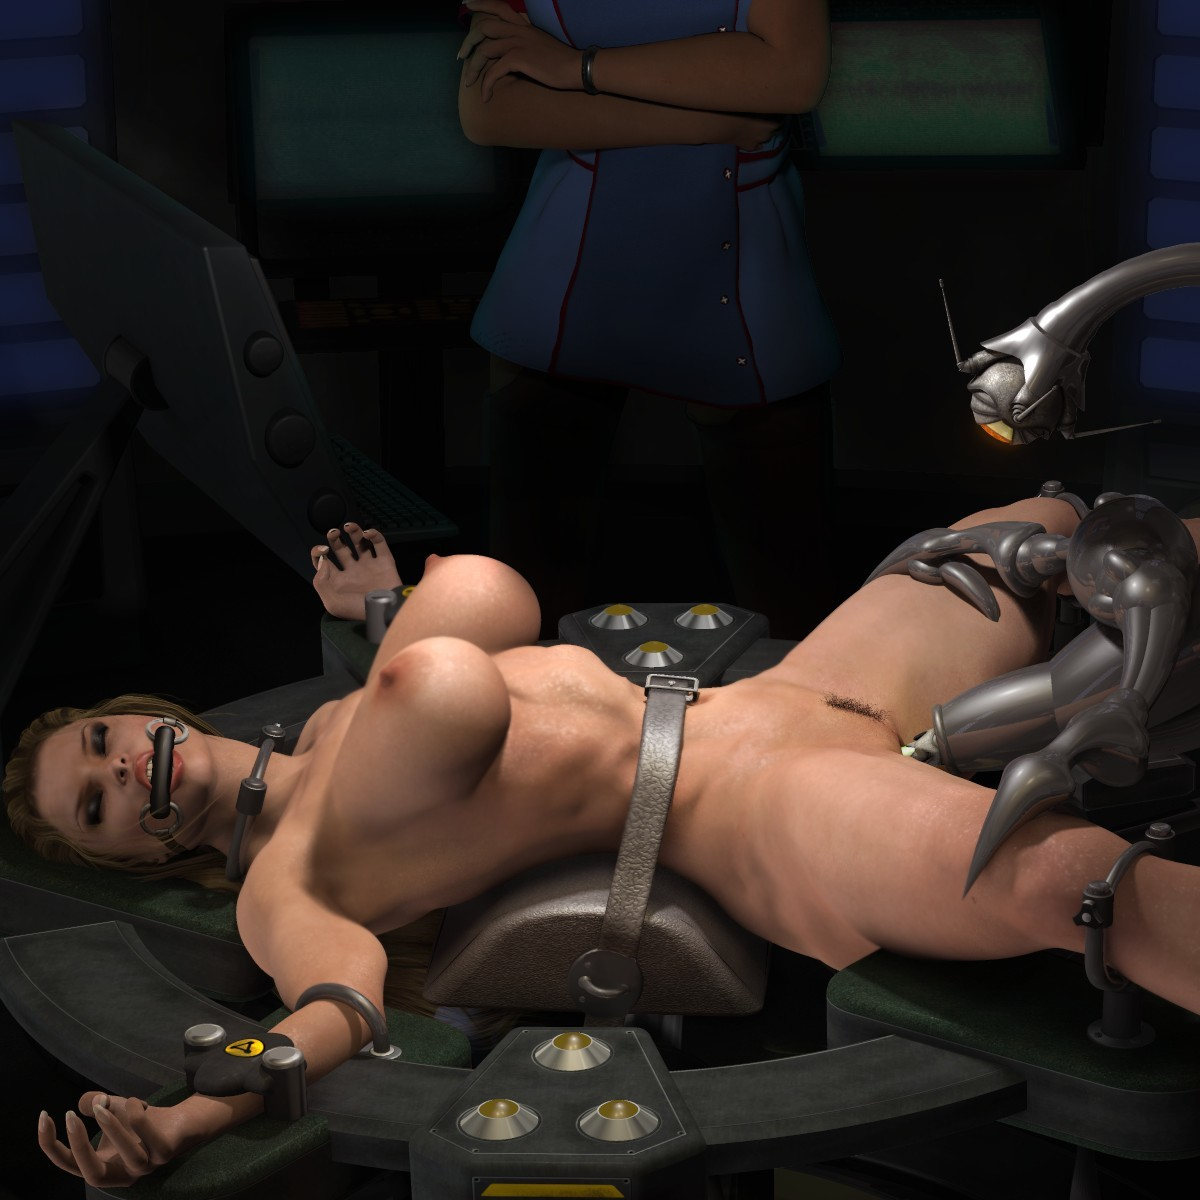 scifi-bdsm-stories-naked-tits-seduction-gif